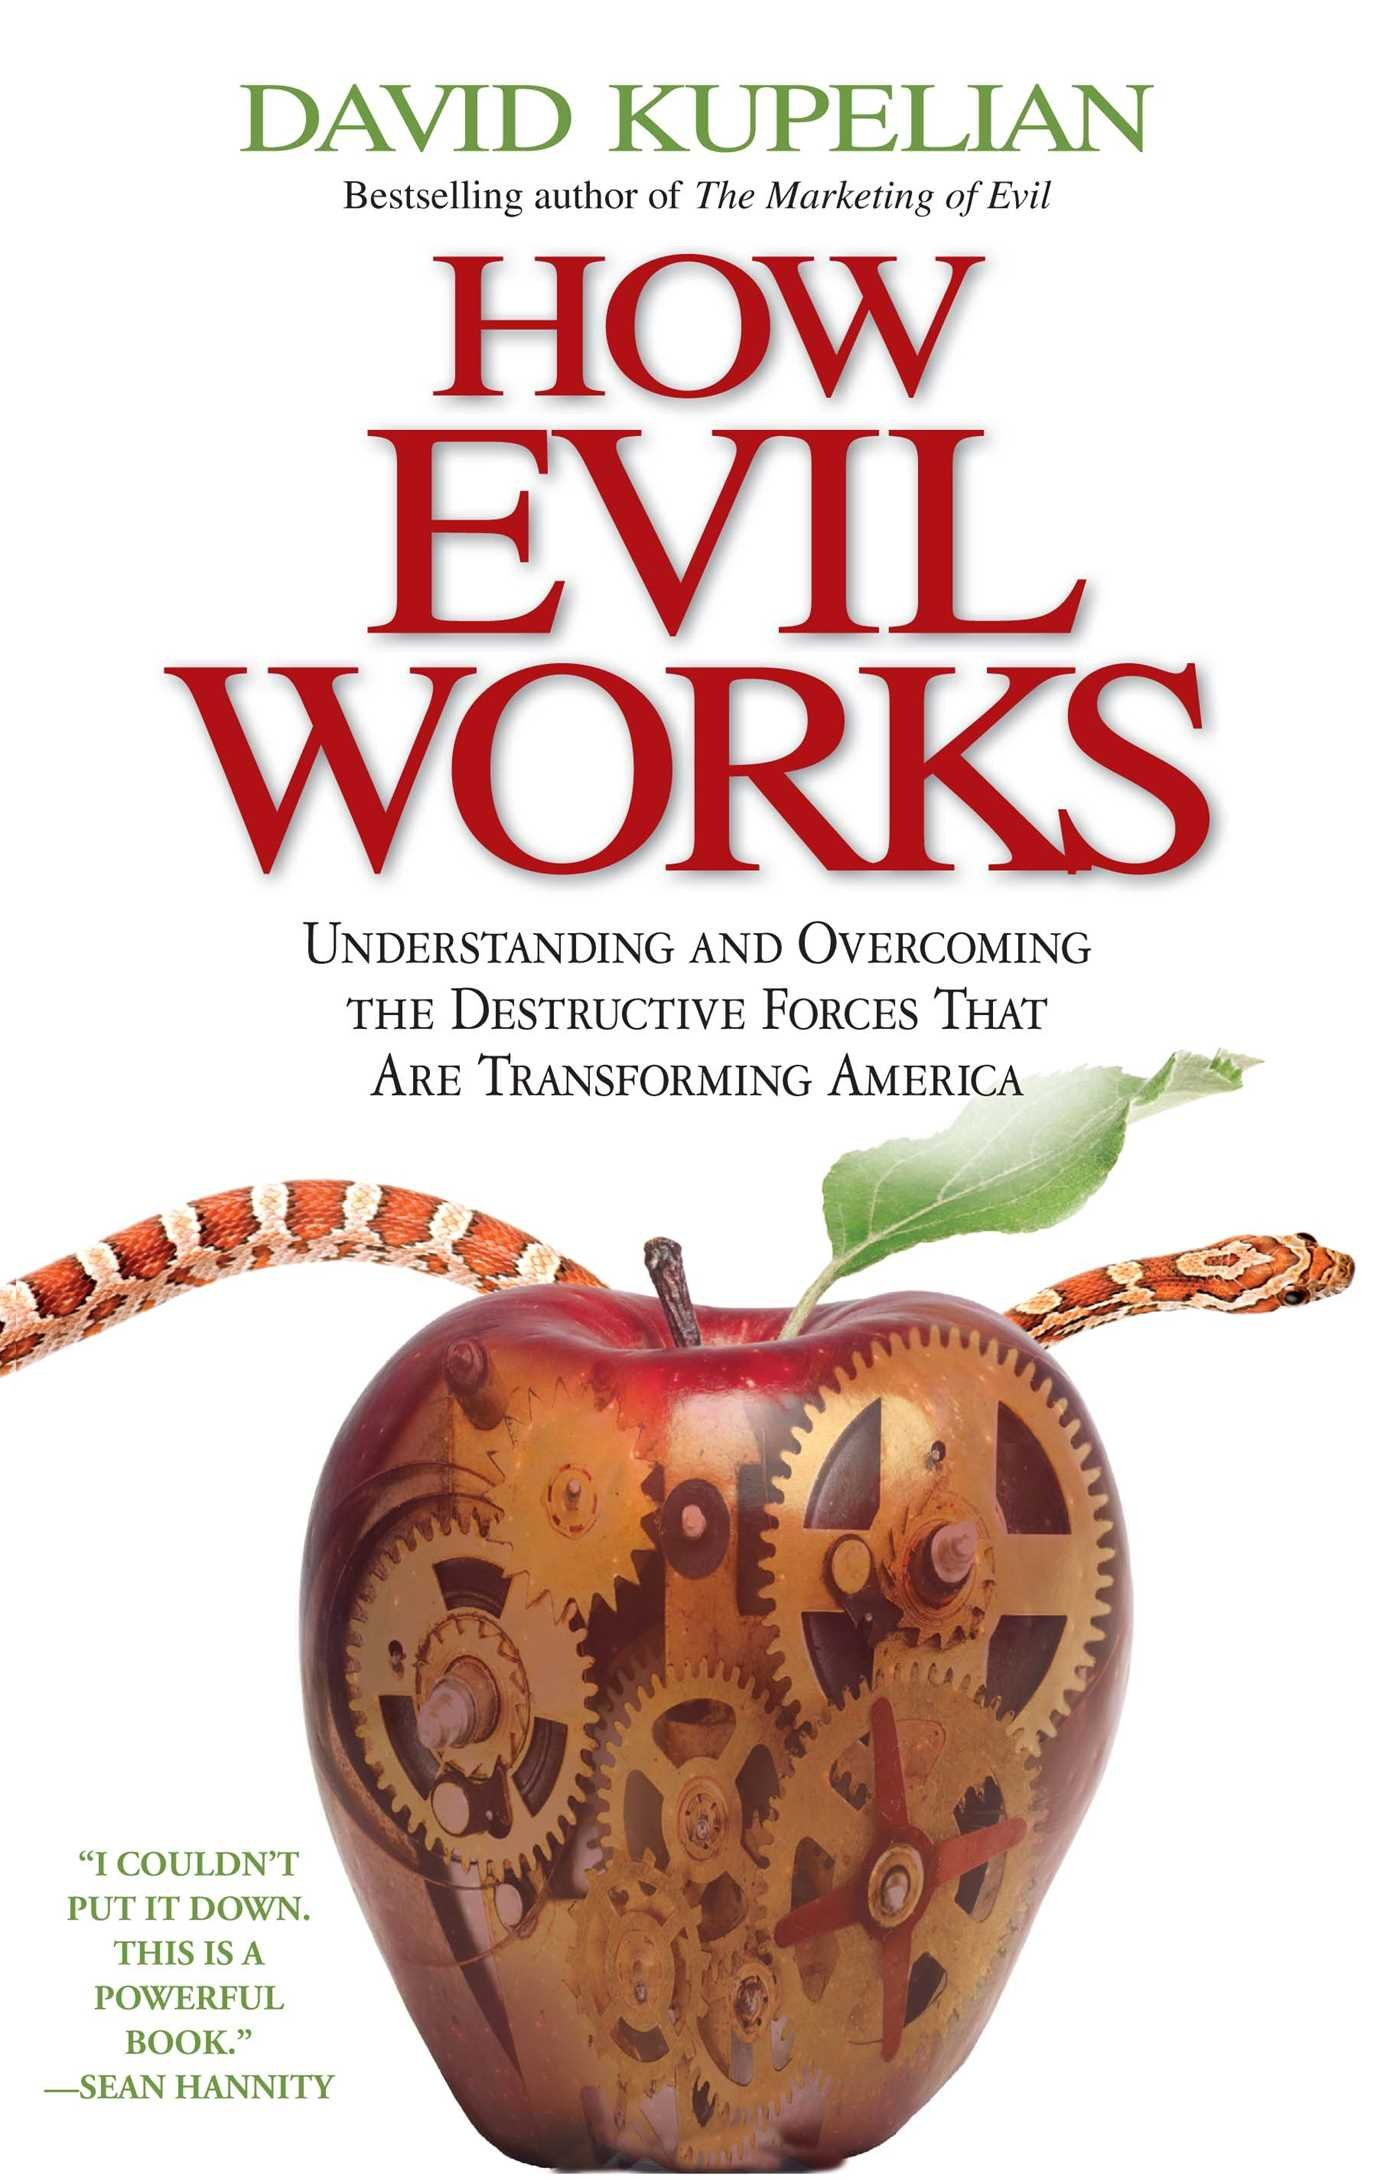 How Evil Works: Understanding and Overcoming the Destructive Forces That  Are Transforming America: David Kupelian: 9781439168202: Amazon.com: Books